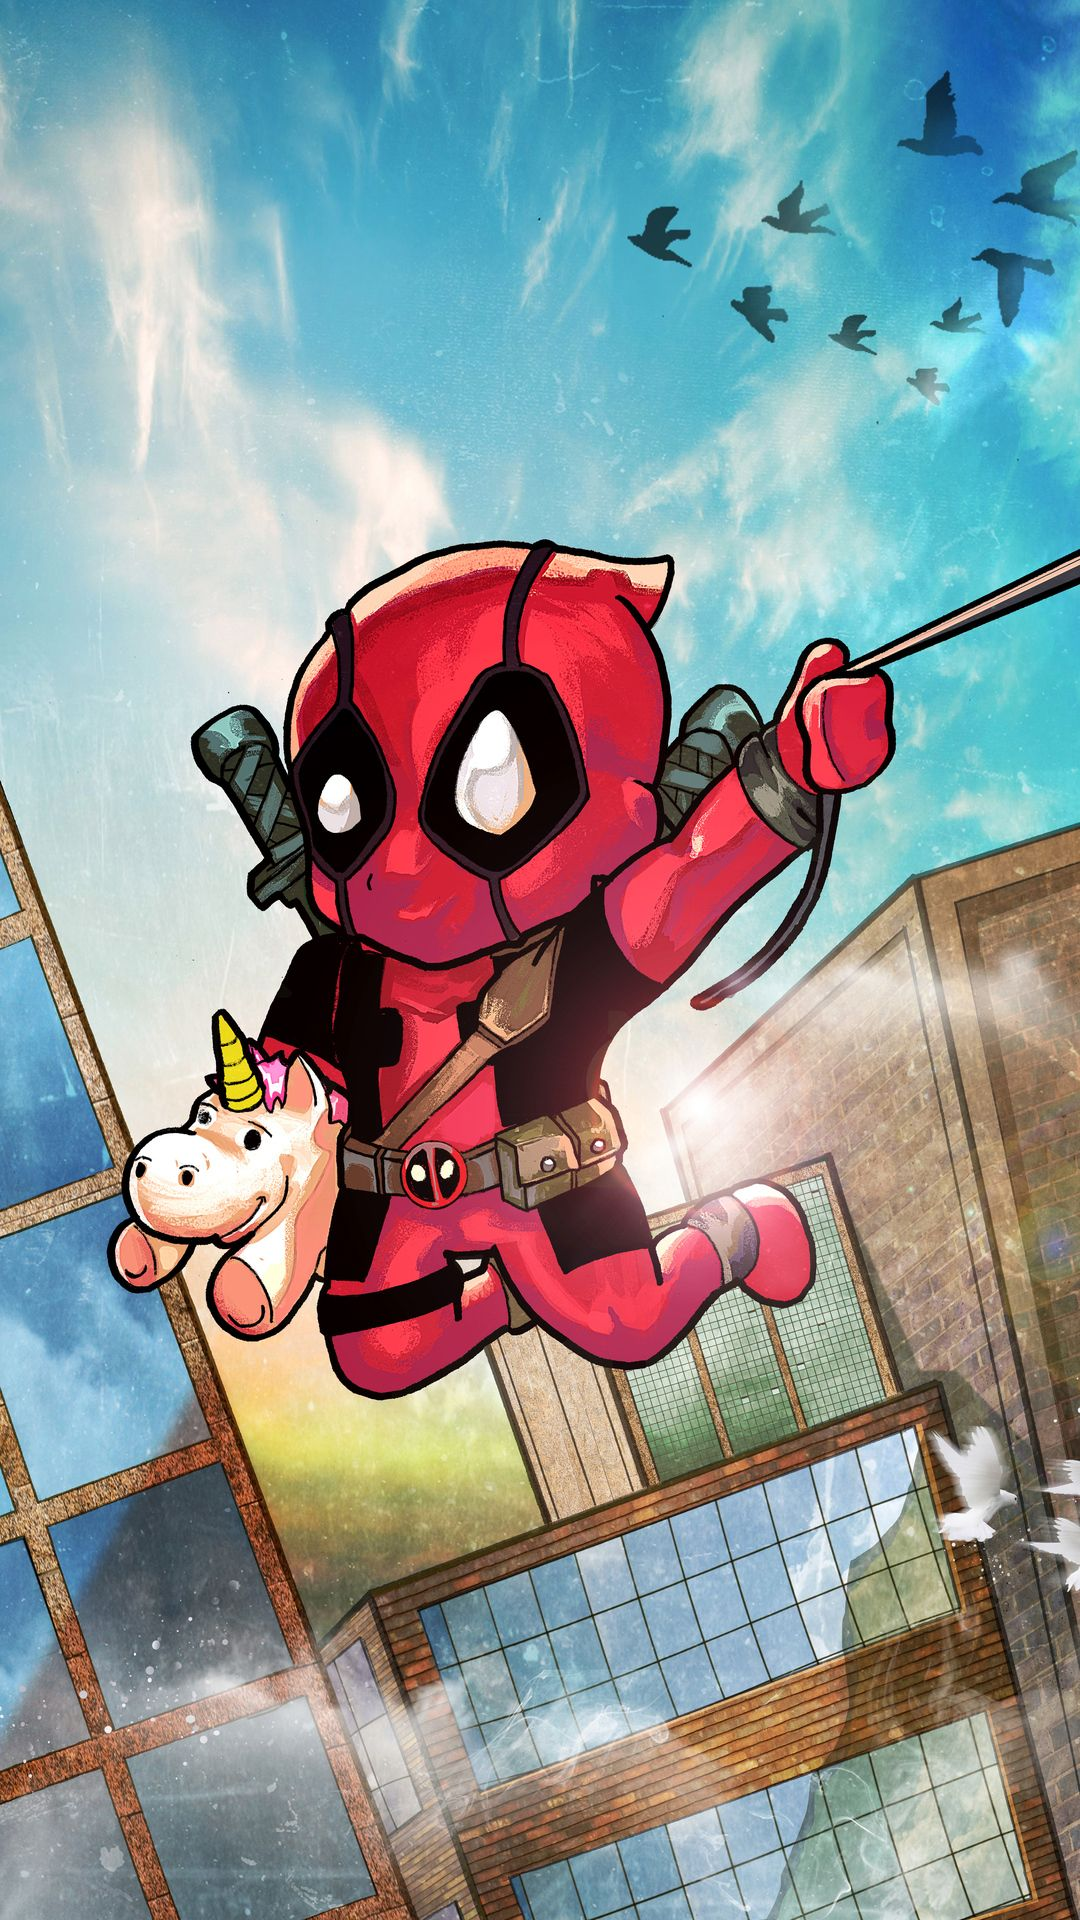 Chibi Deadpool Deadpool Artwork Deadpool Chibi Deadpool Wallpaper